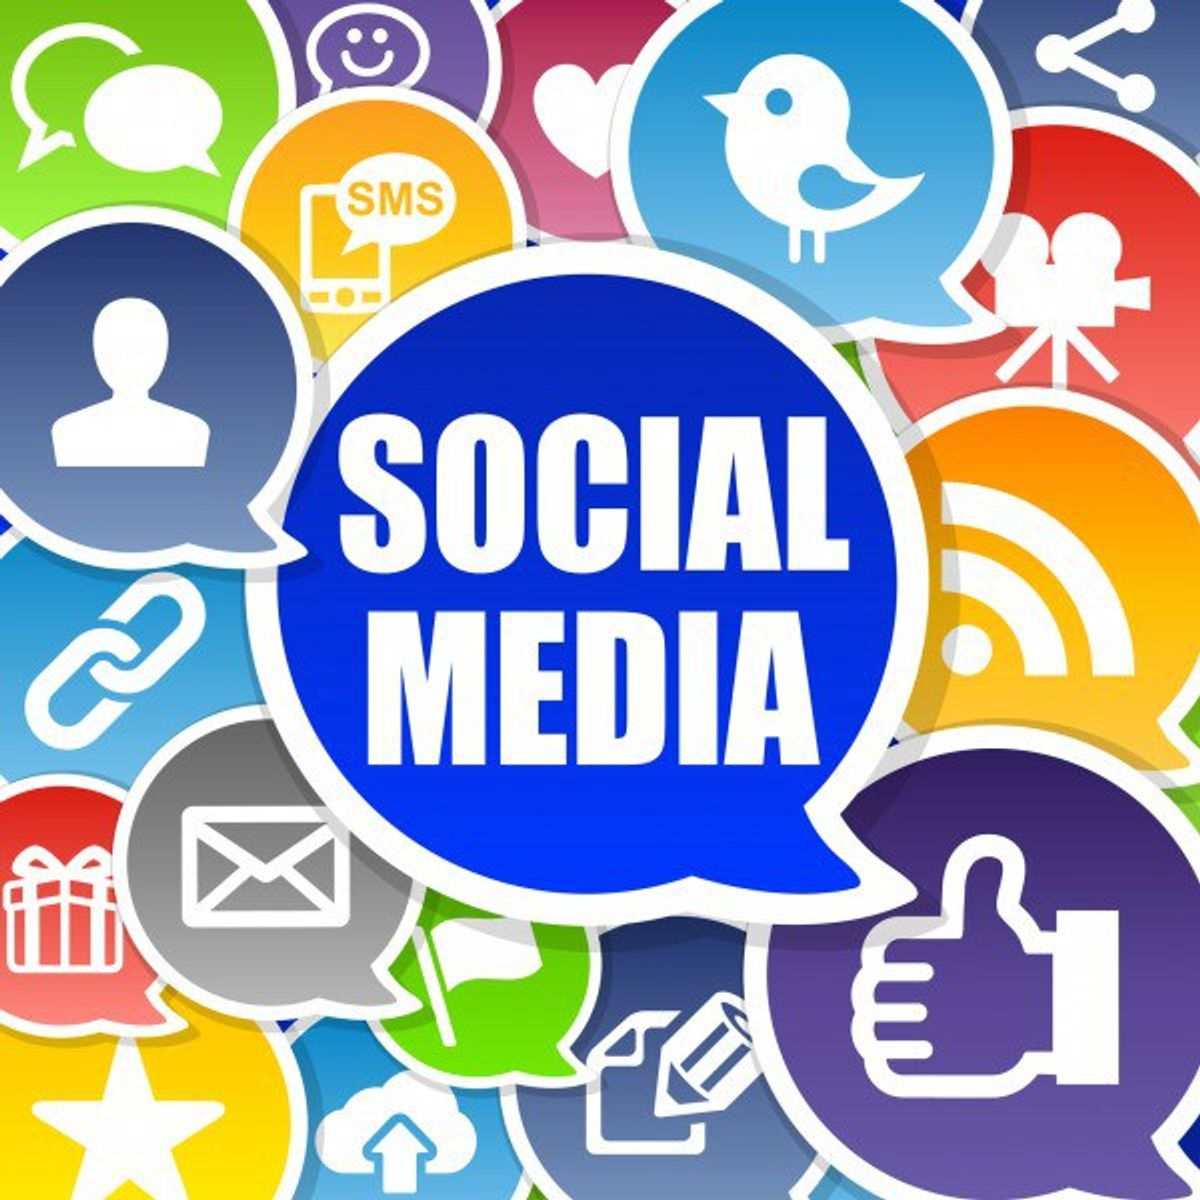 How Social Media Is Affecting Our Focus